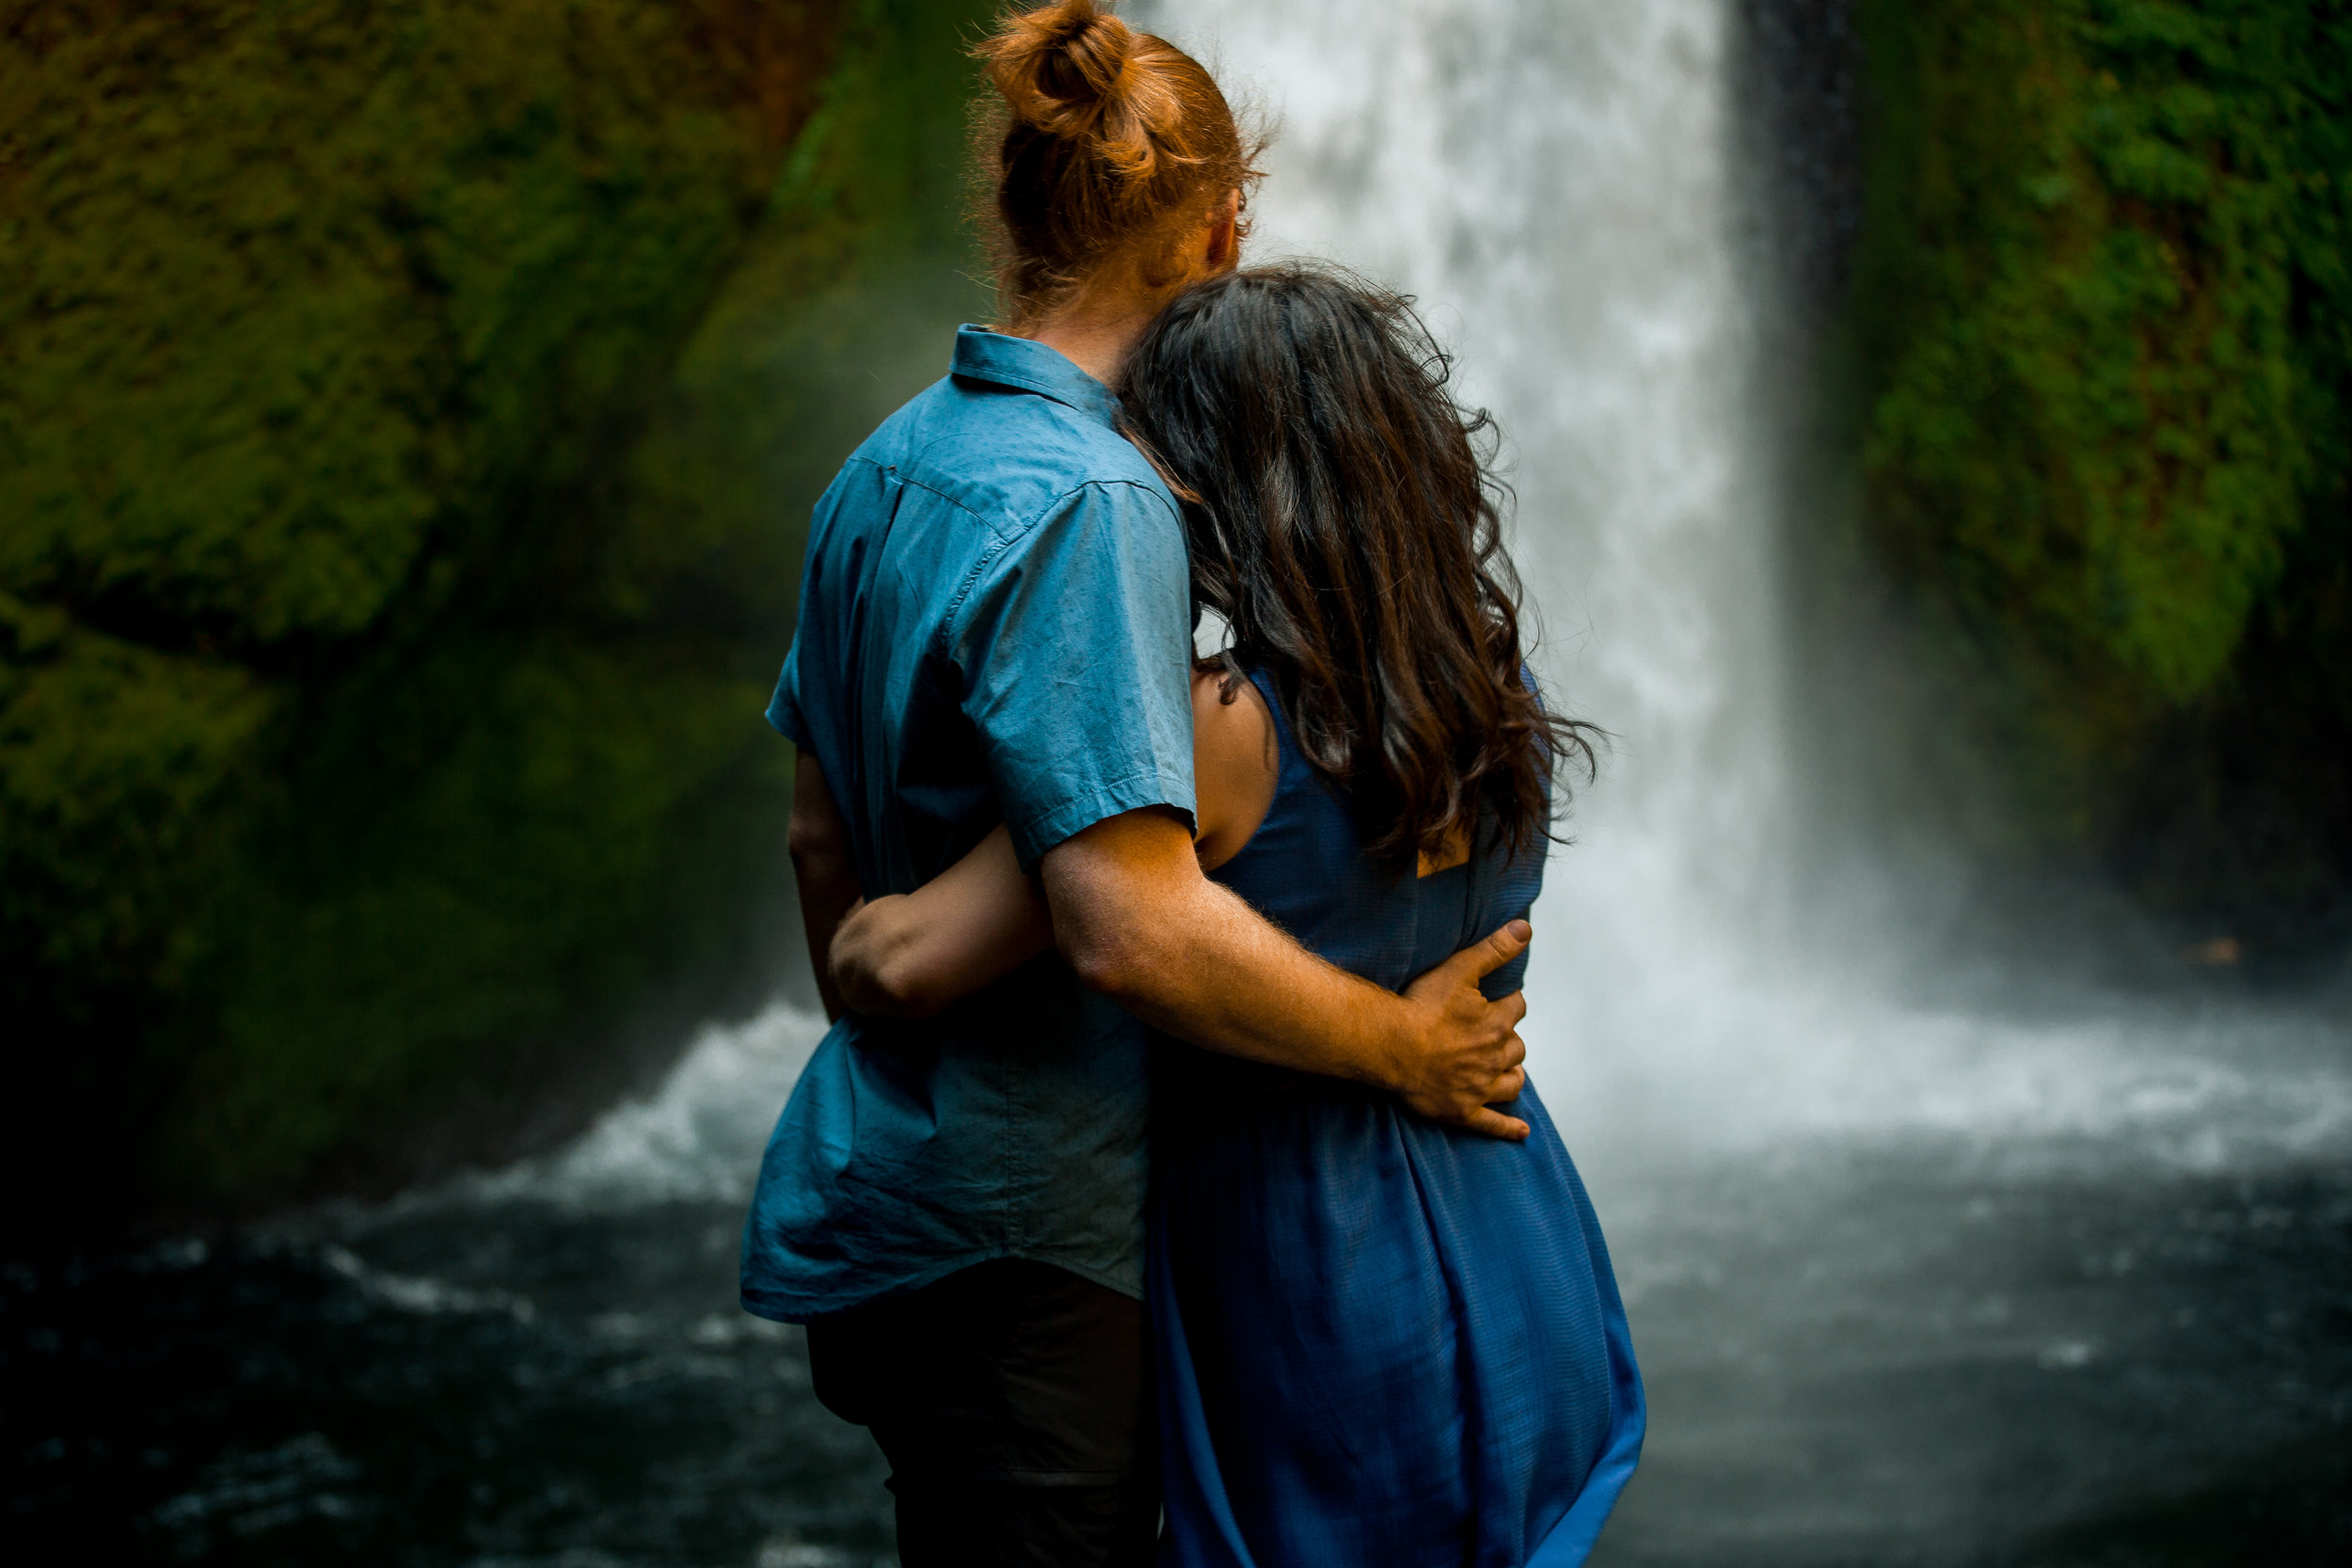 nicole-daacke-photography-wahclella-falls-waterfall-engagement-session-portland-engagement-photographer-columbia-river-gorge-oregon-elopement-photographer-6.jpg